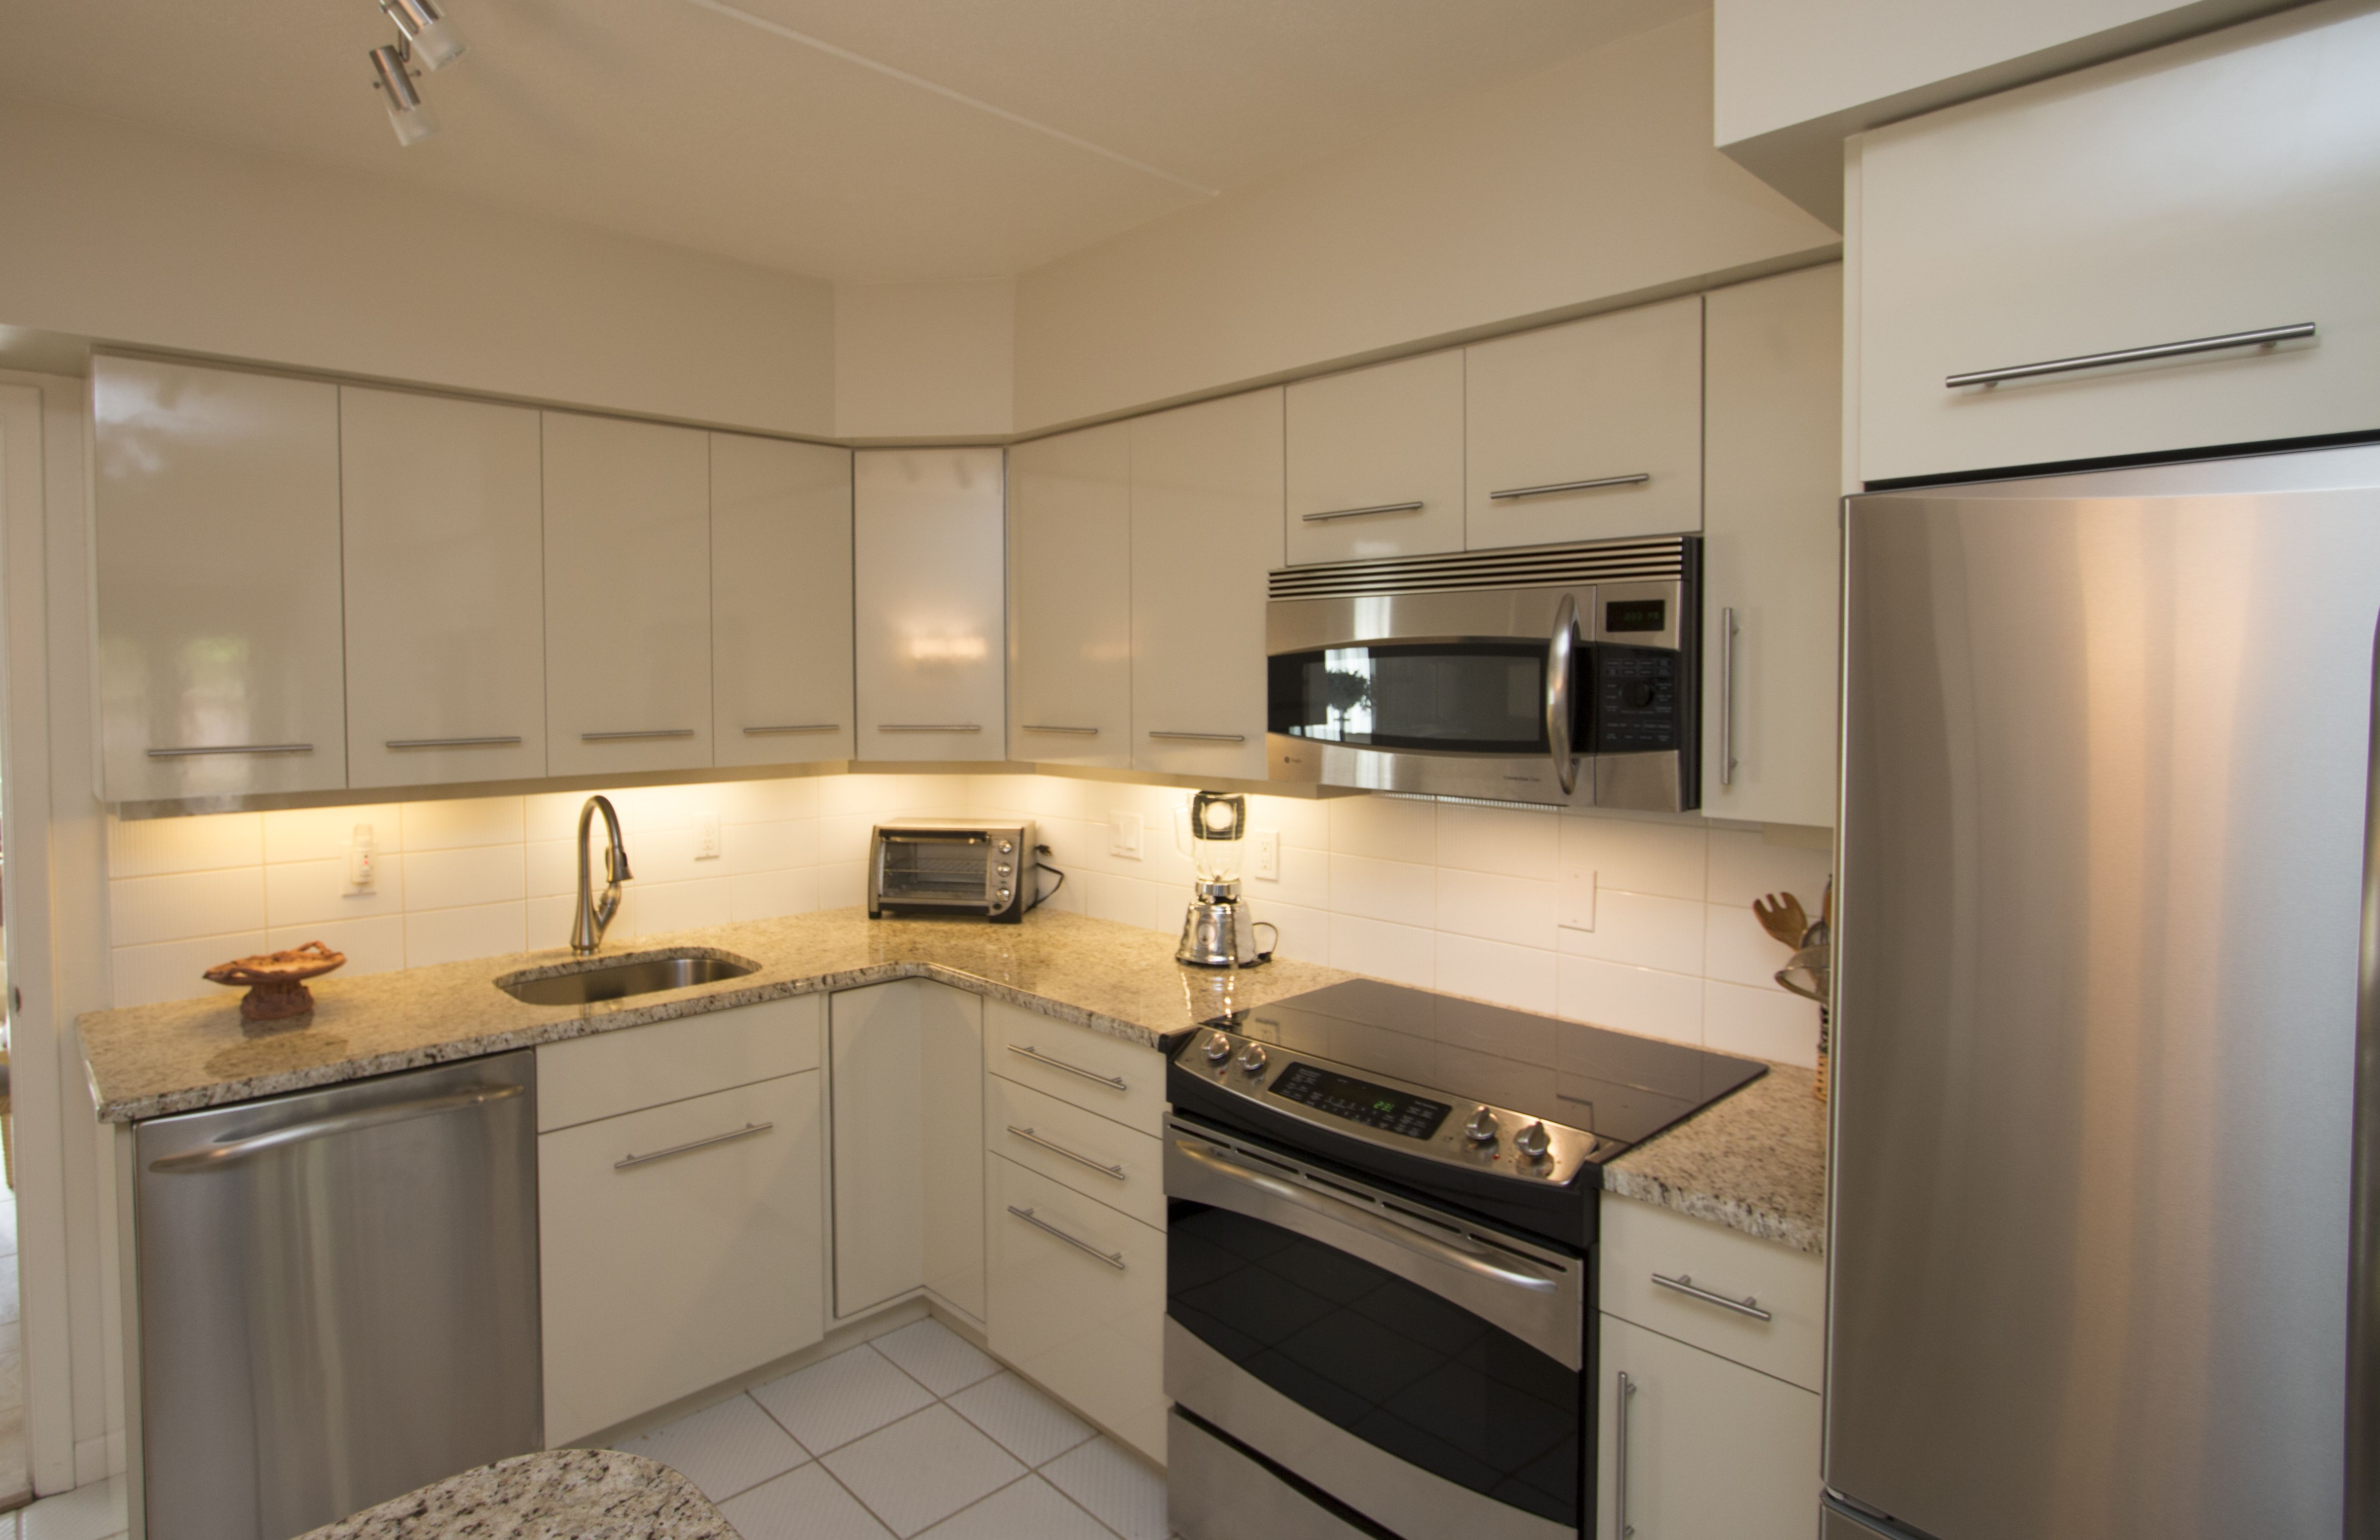 White Kitchen In A Contemporary Style From Falls Church Va The Hardware Is Brushed Nic With Images Contemporary Kitchen Custom Kitchen Cabinets Refacing Kitchen Cabinets